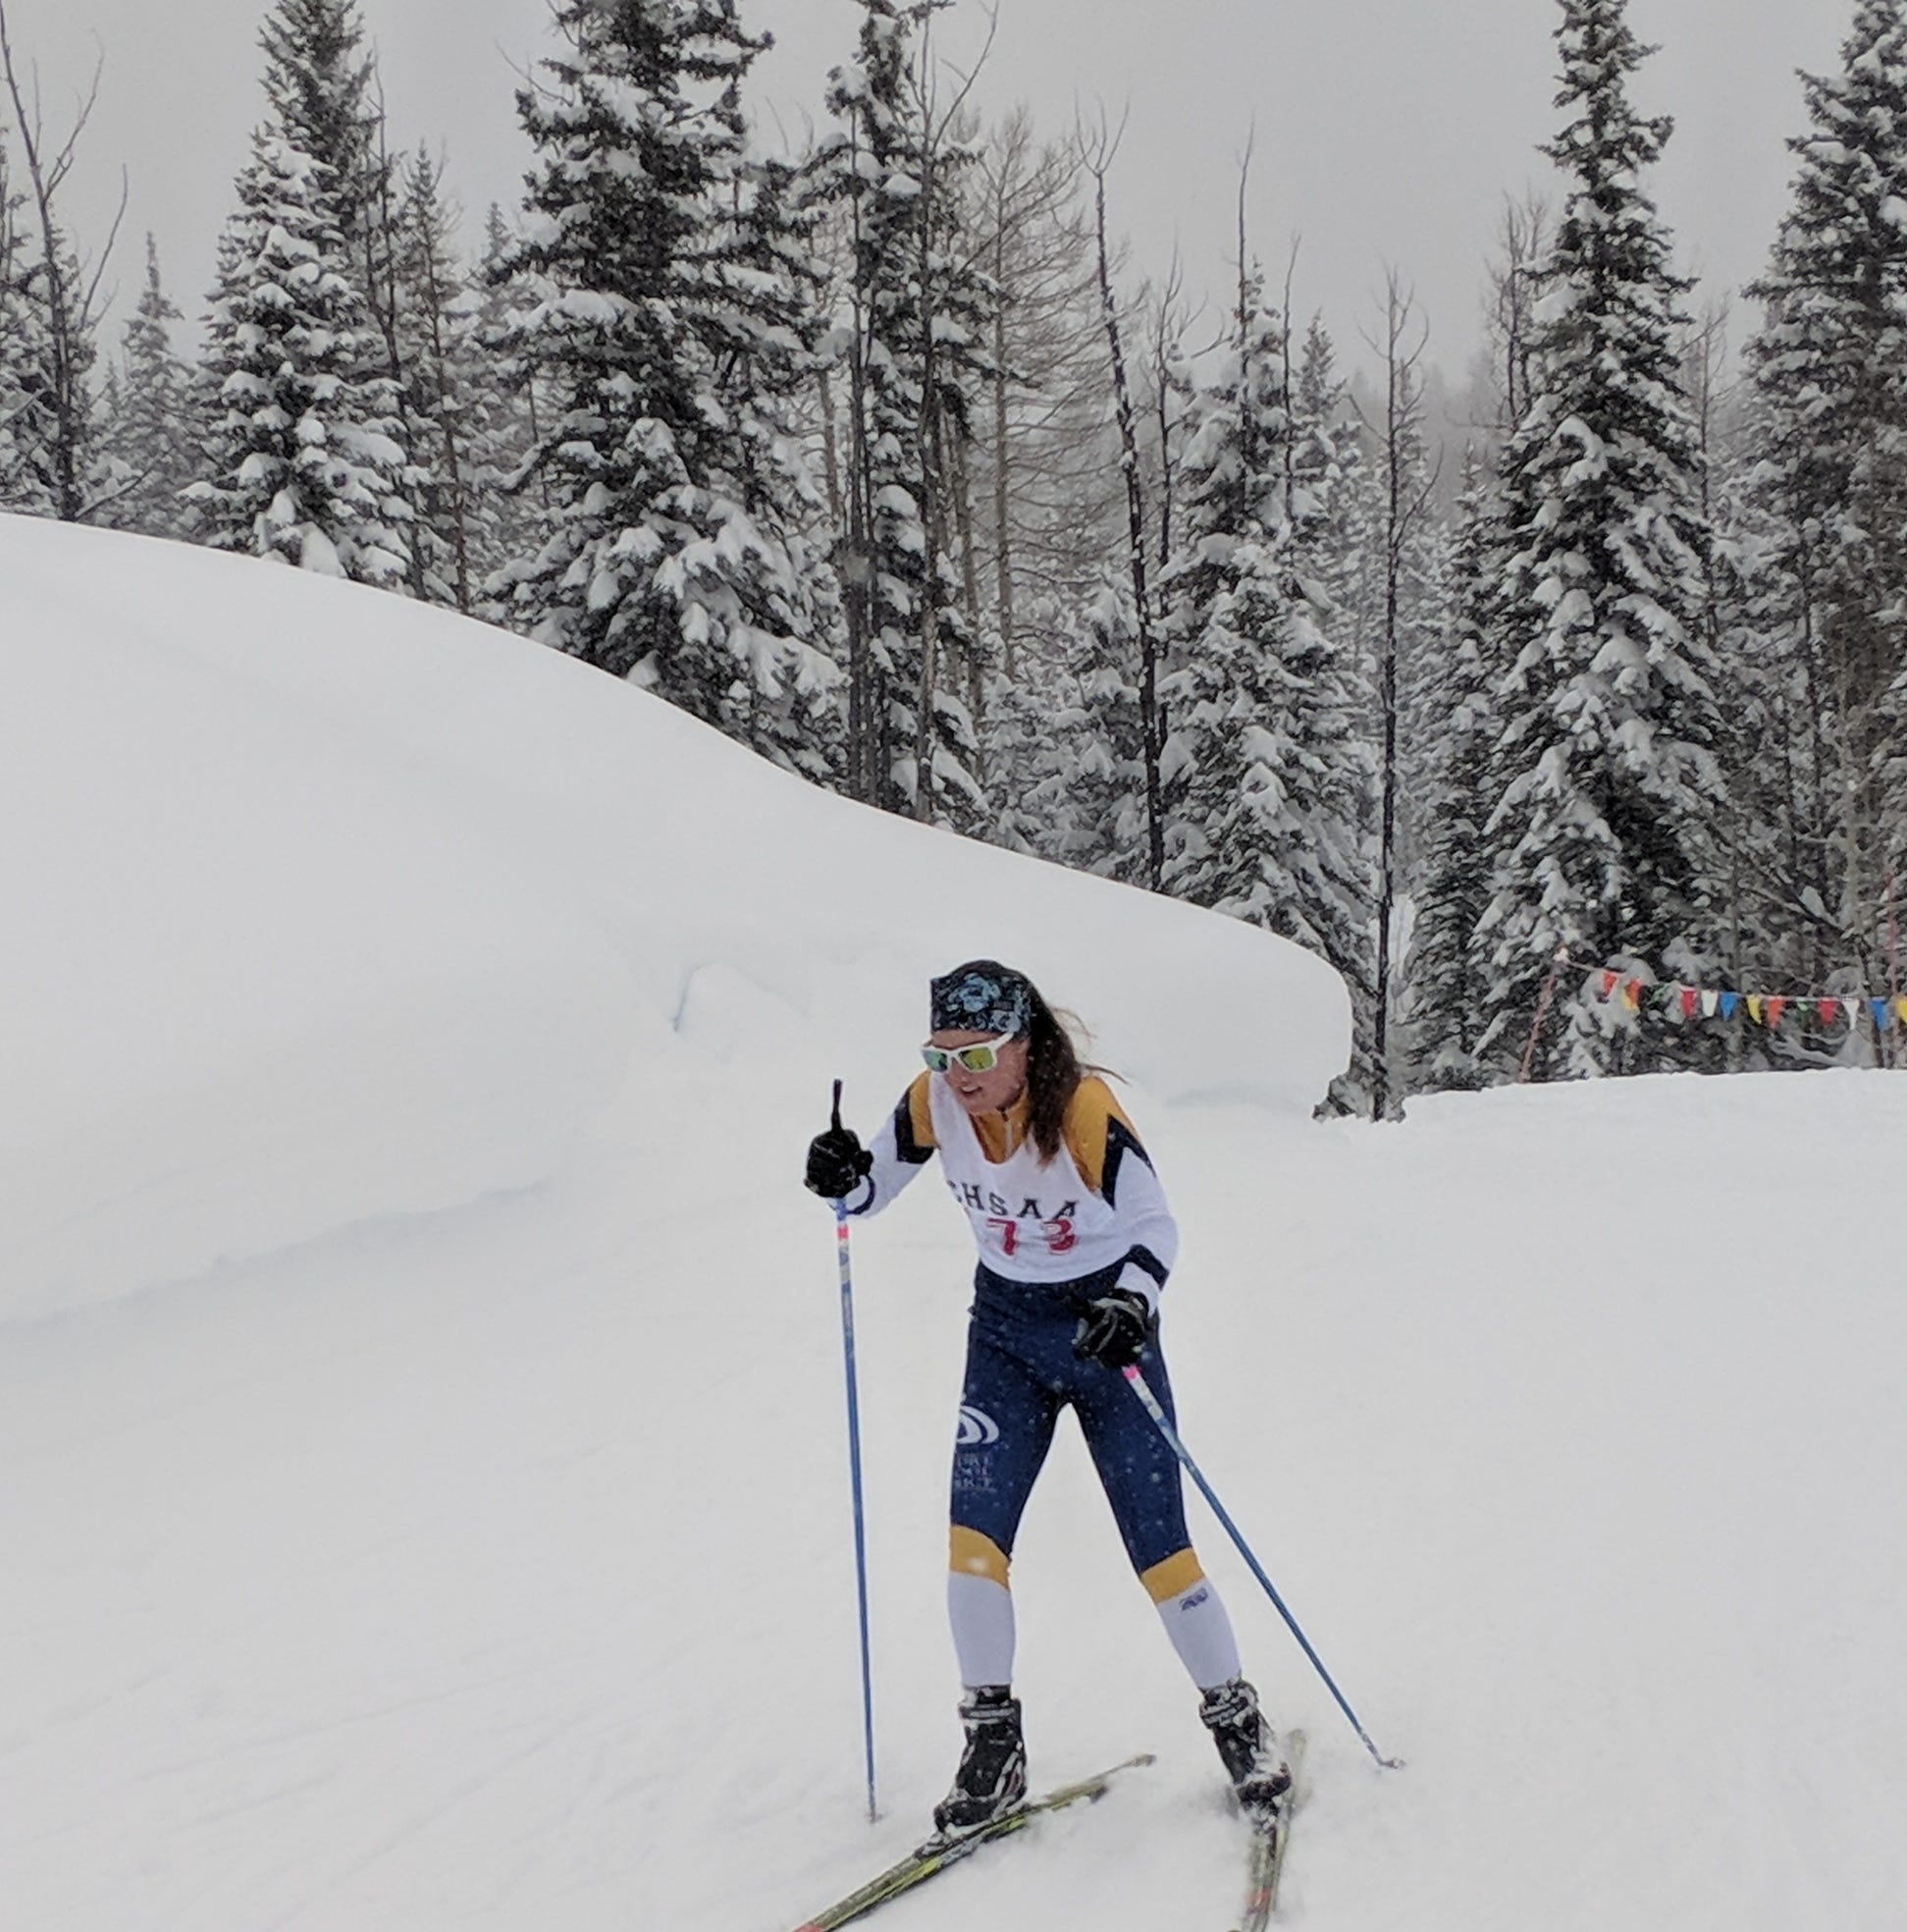 PSD's first-year ski teams finish 11th, 12th in final races at state championships